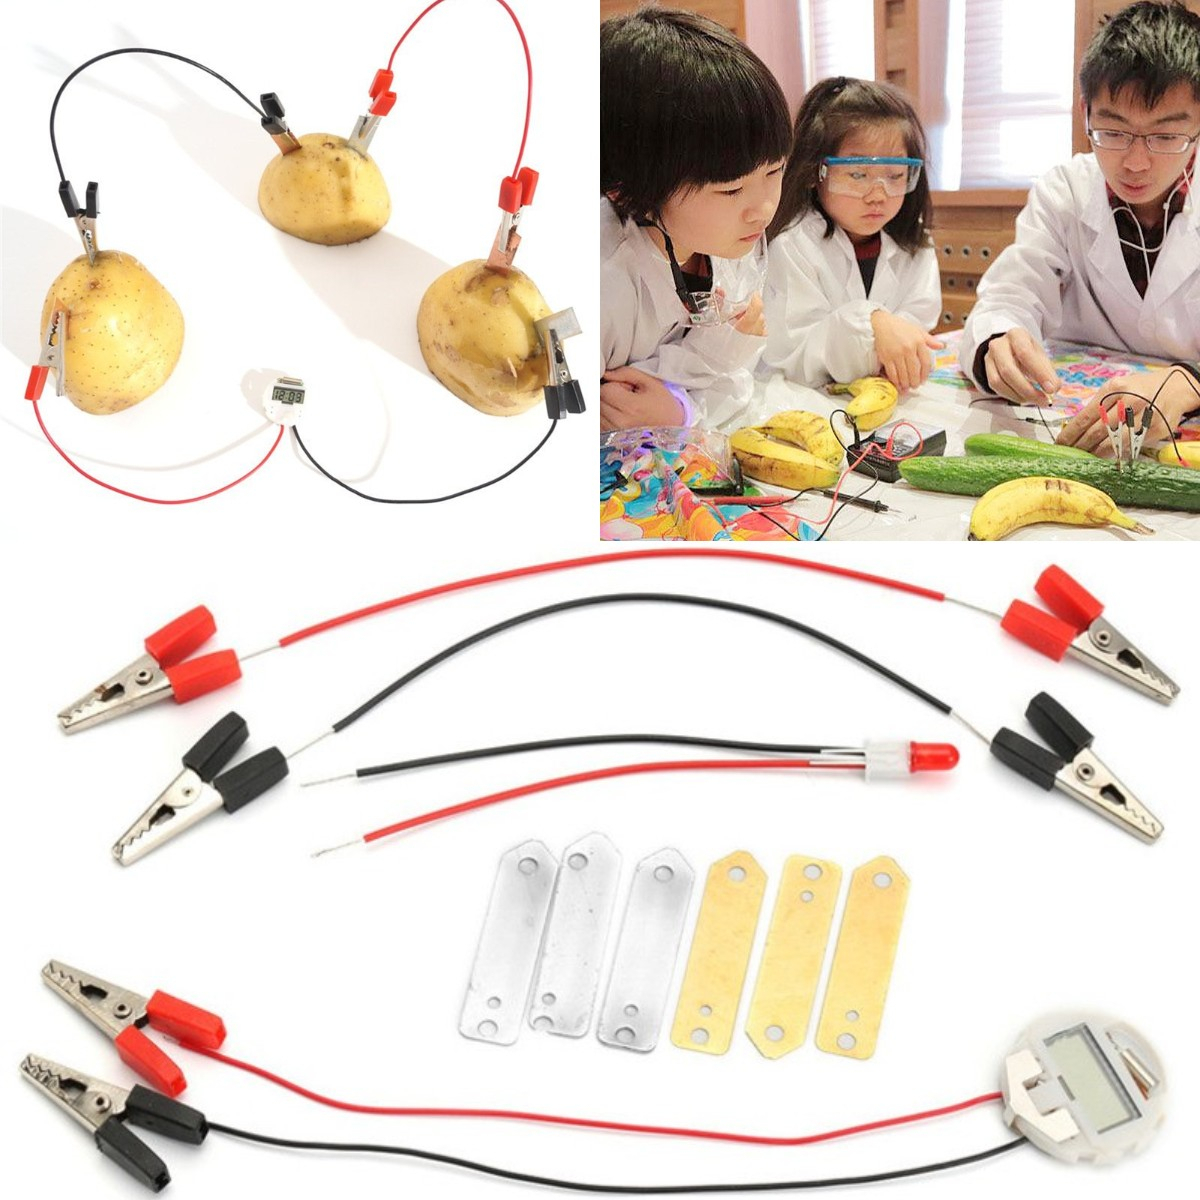 Potato Fruit Biologia Energy Generate Electricity Science Experiment Educational Toys For Children Kids School Electric STEM Kit